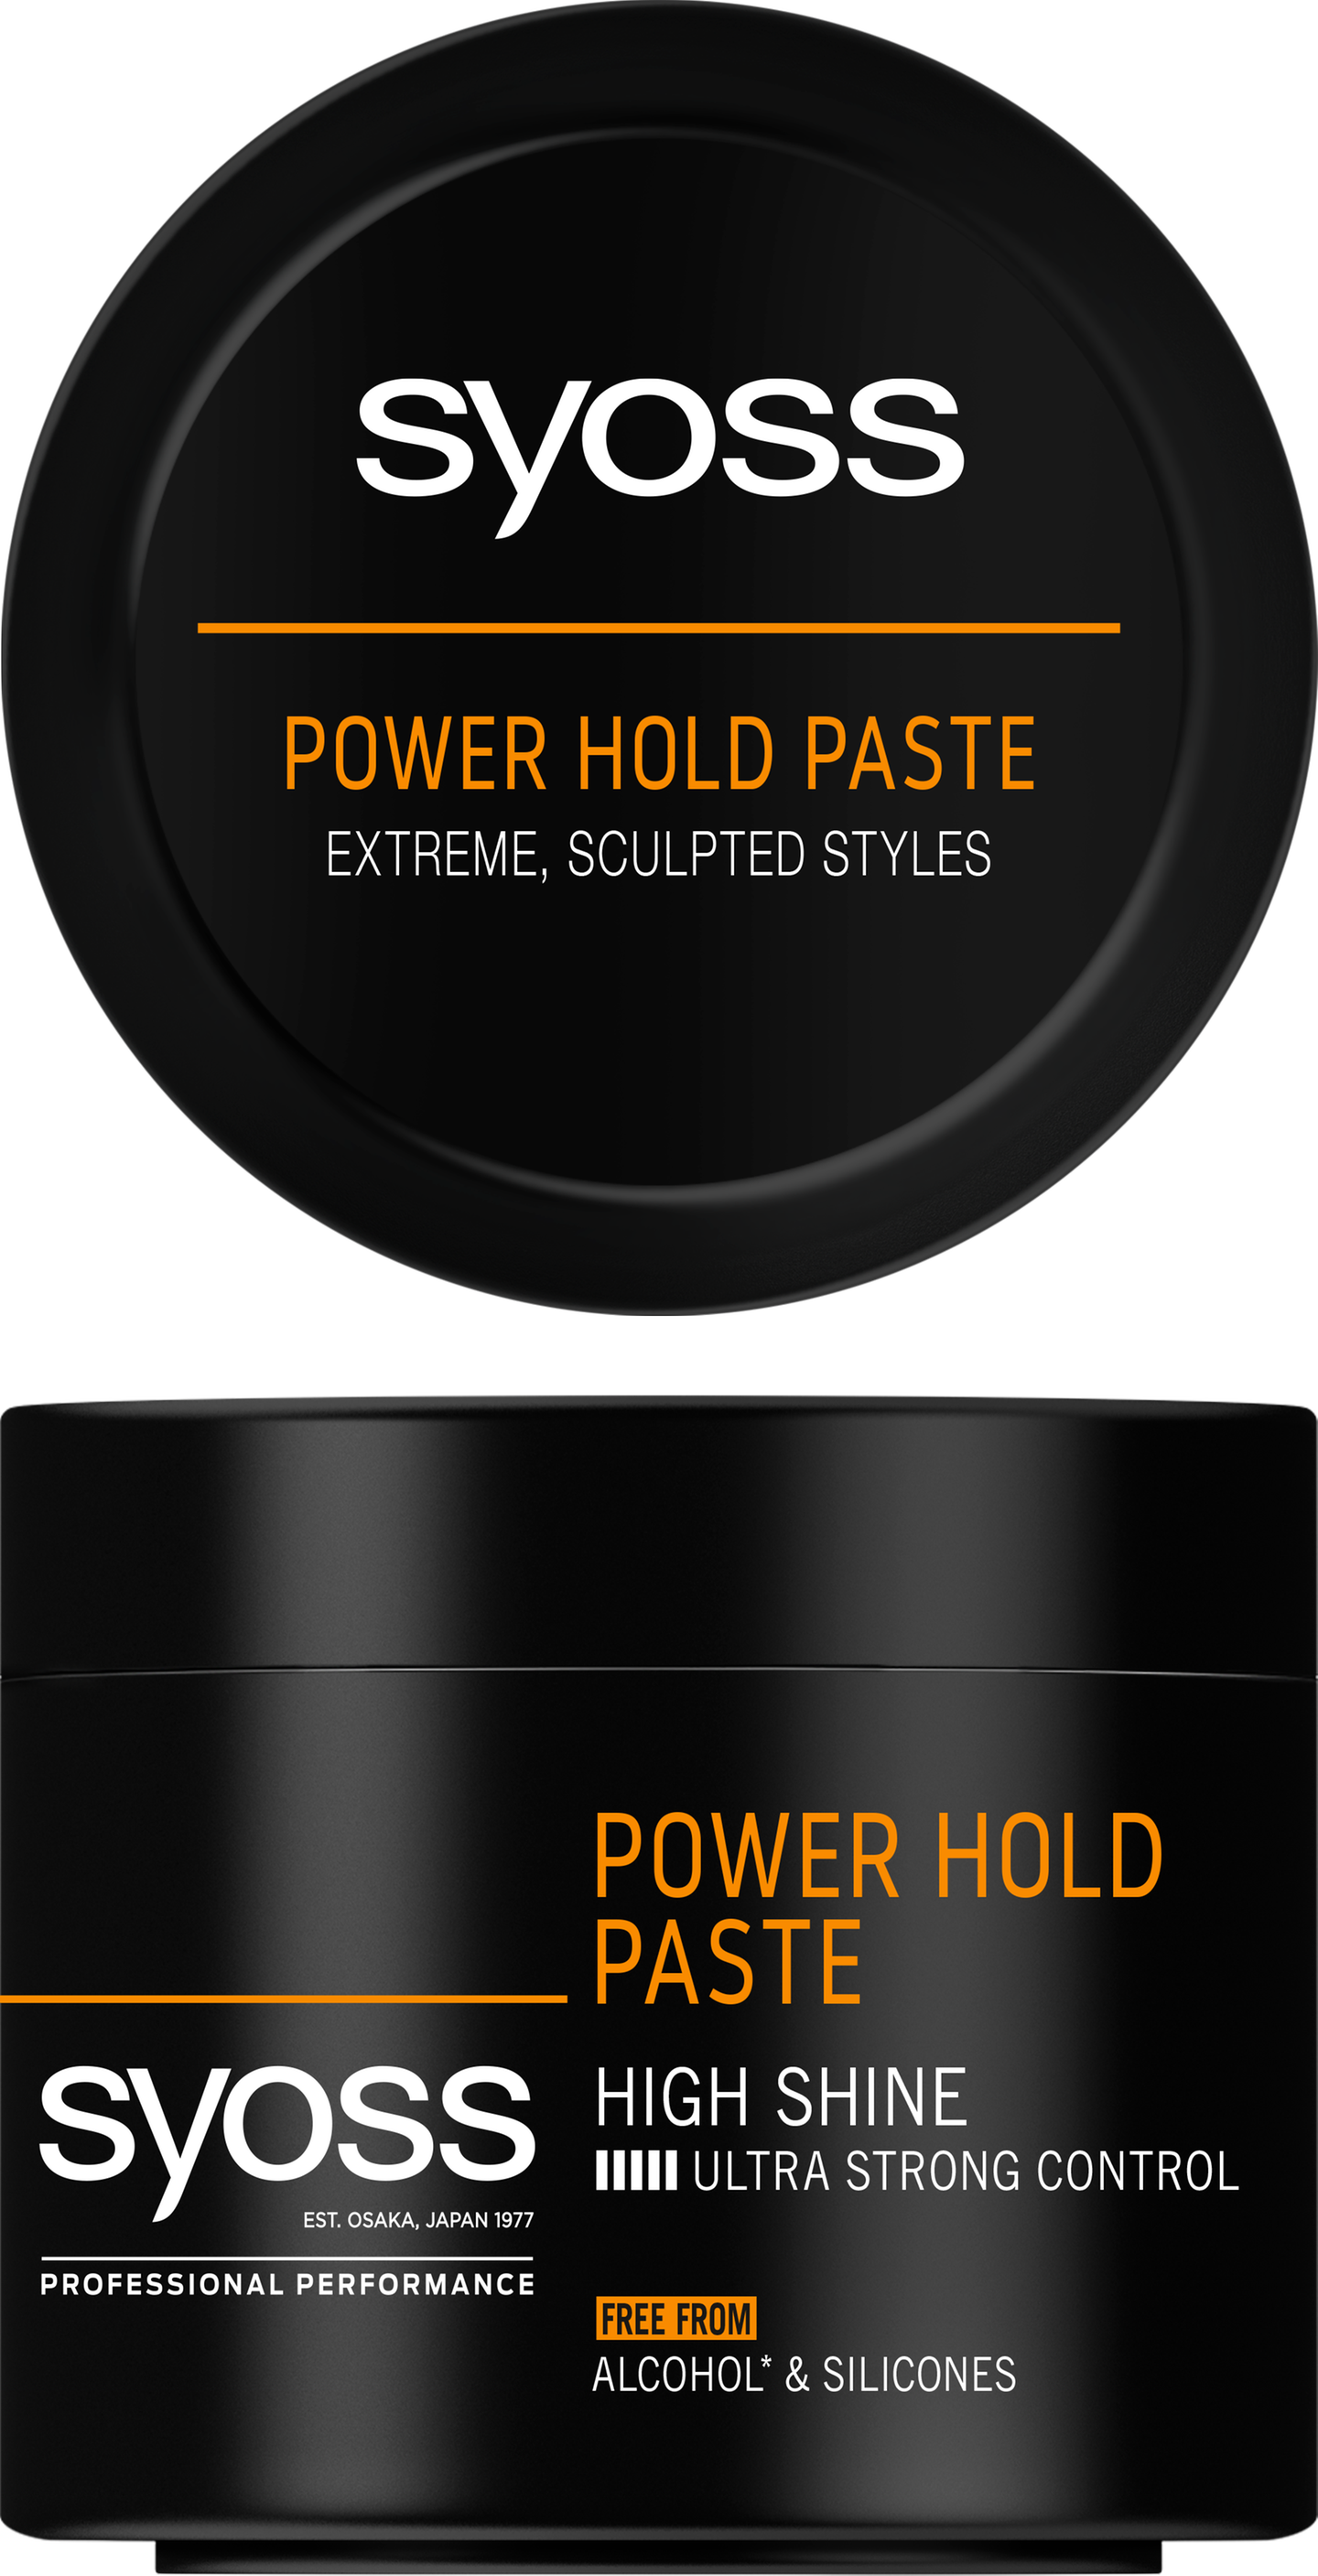 Syoss Power Hold Paste